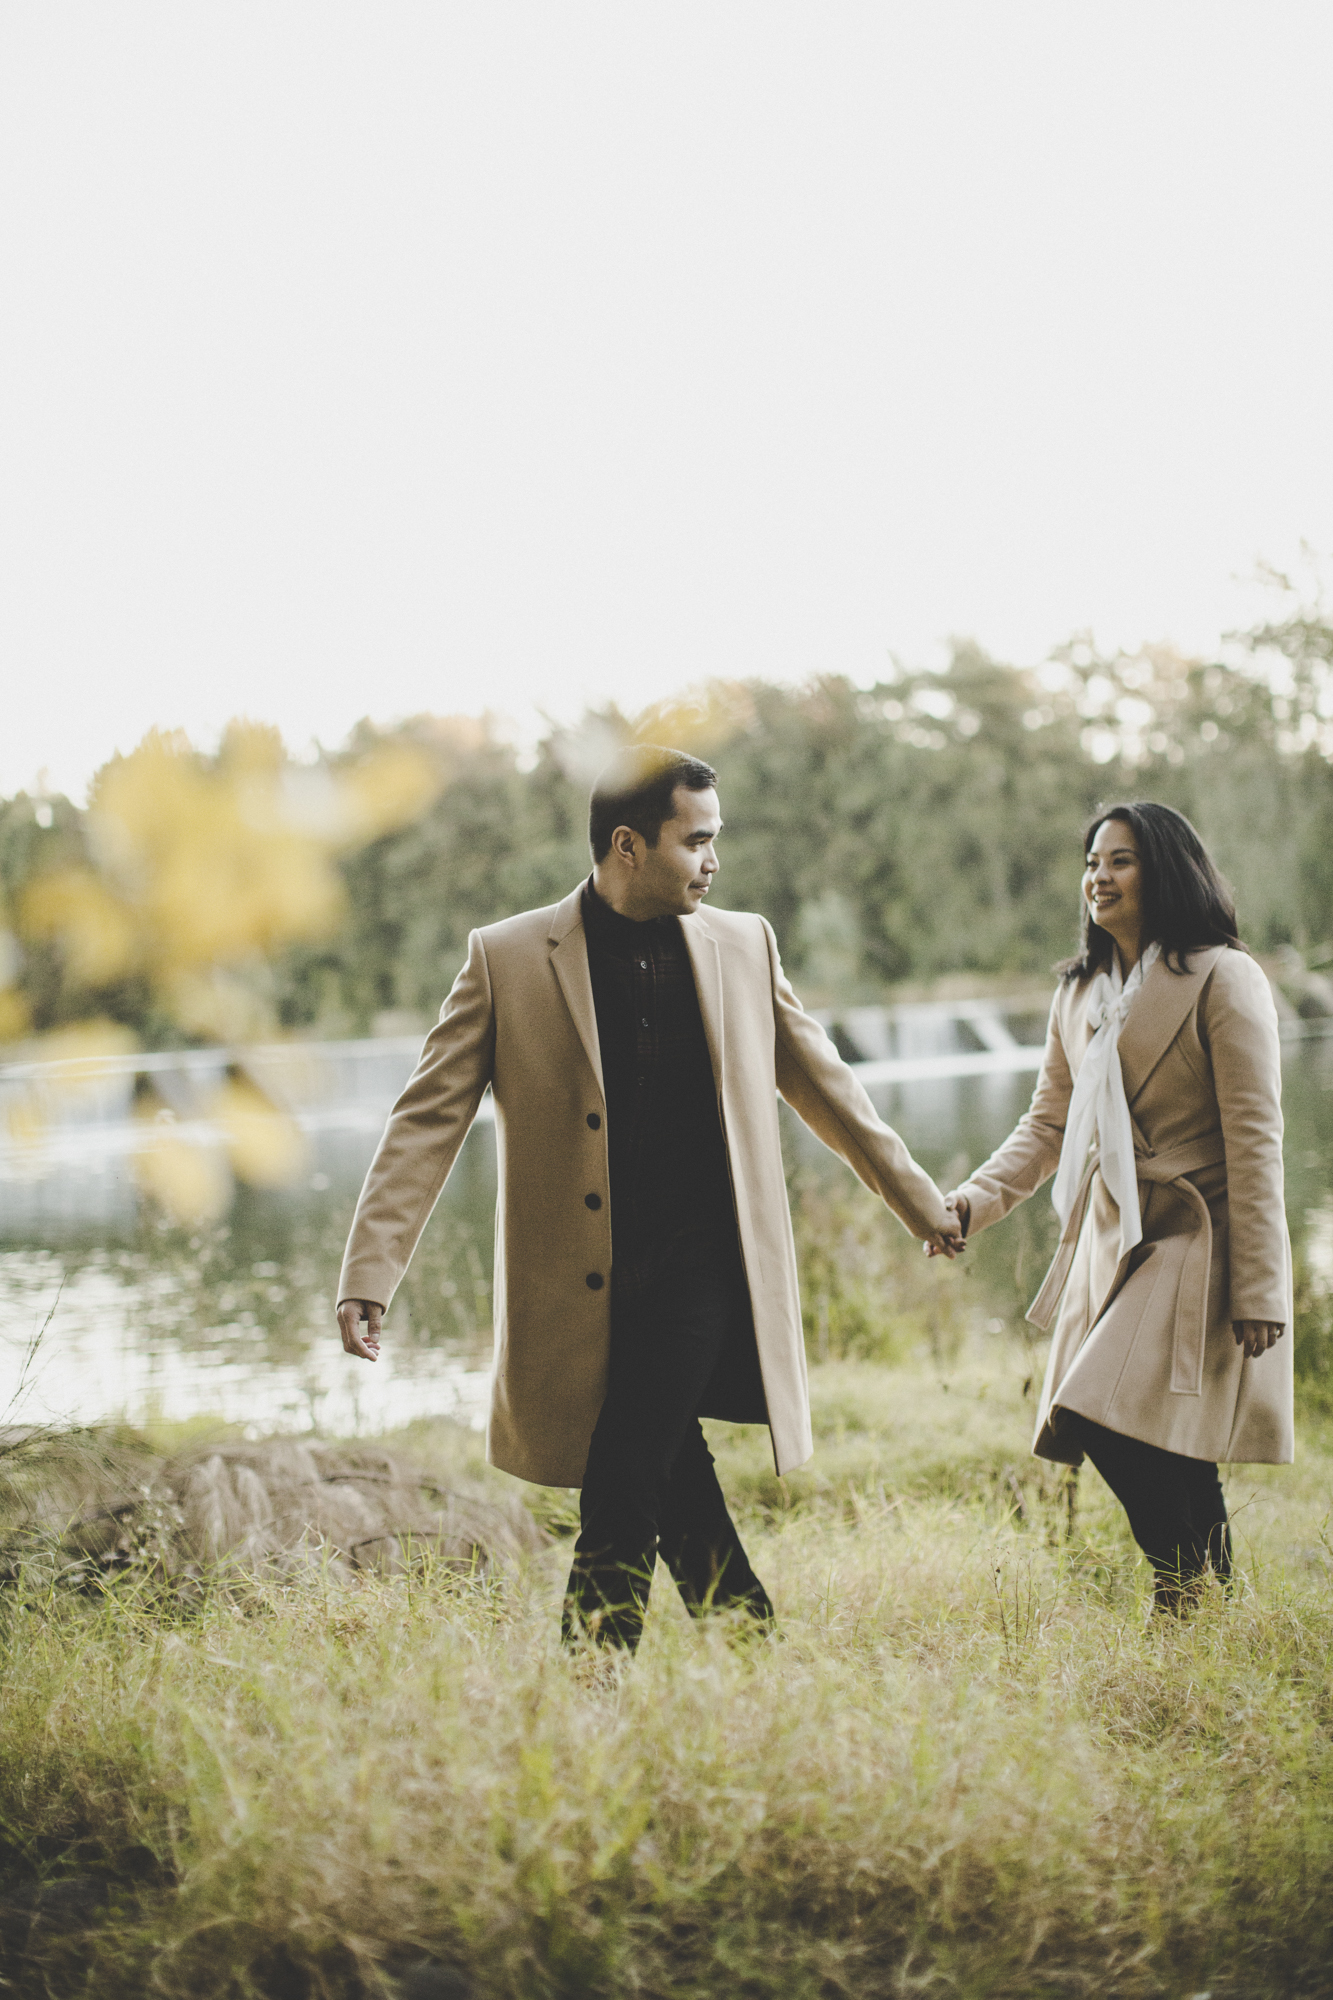 SOCIAL PREWEDDING JILLIAN MARTIN (77 of 90).jpg